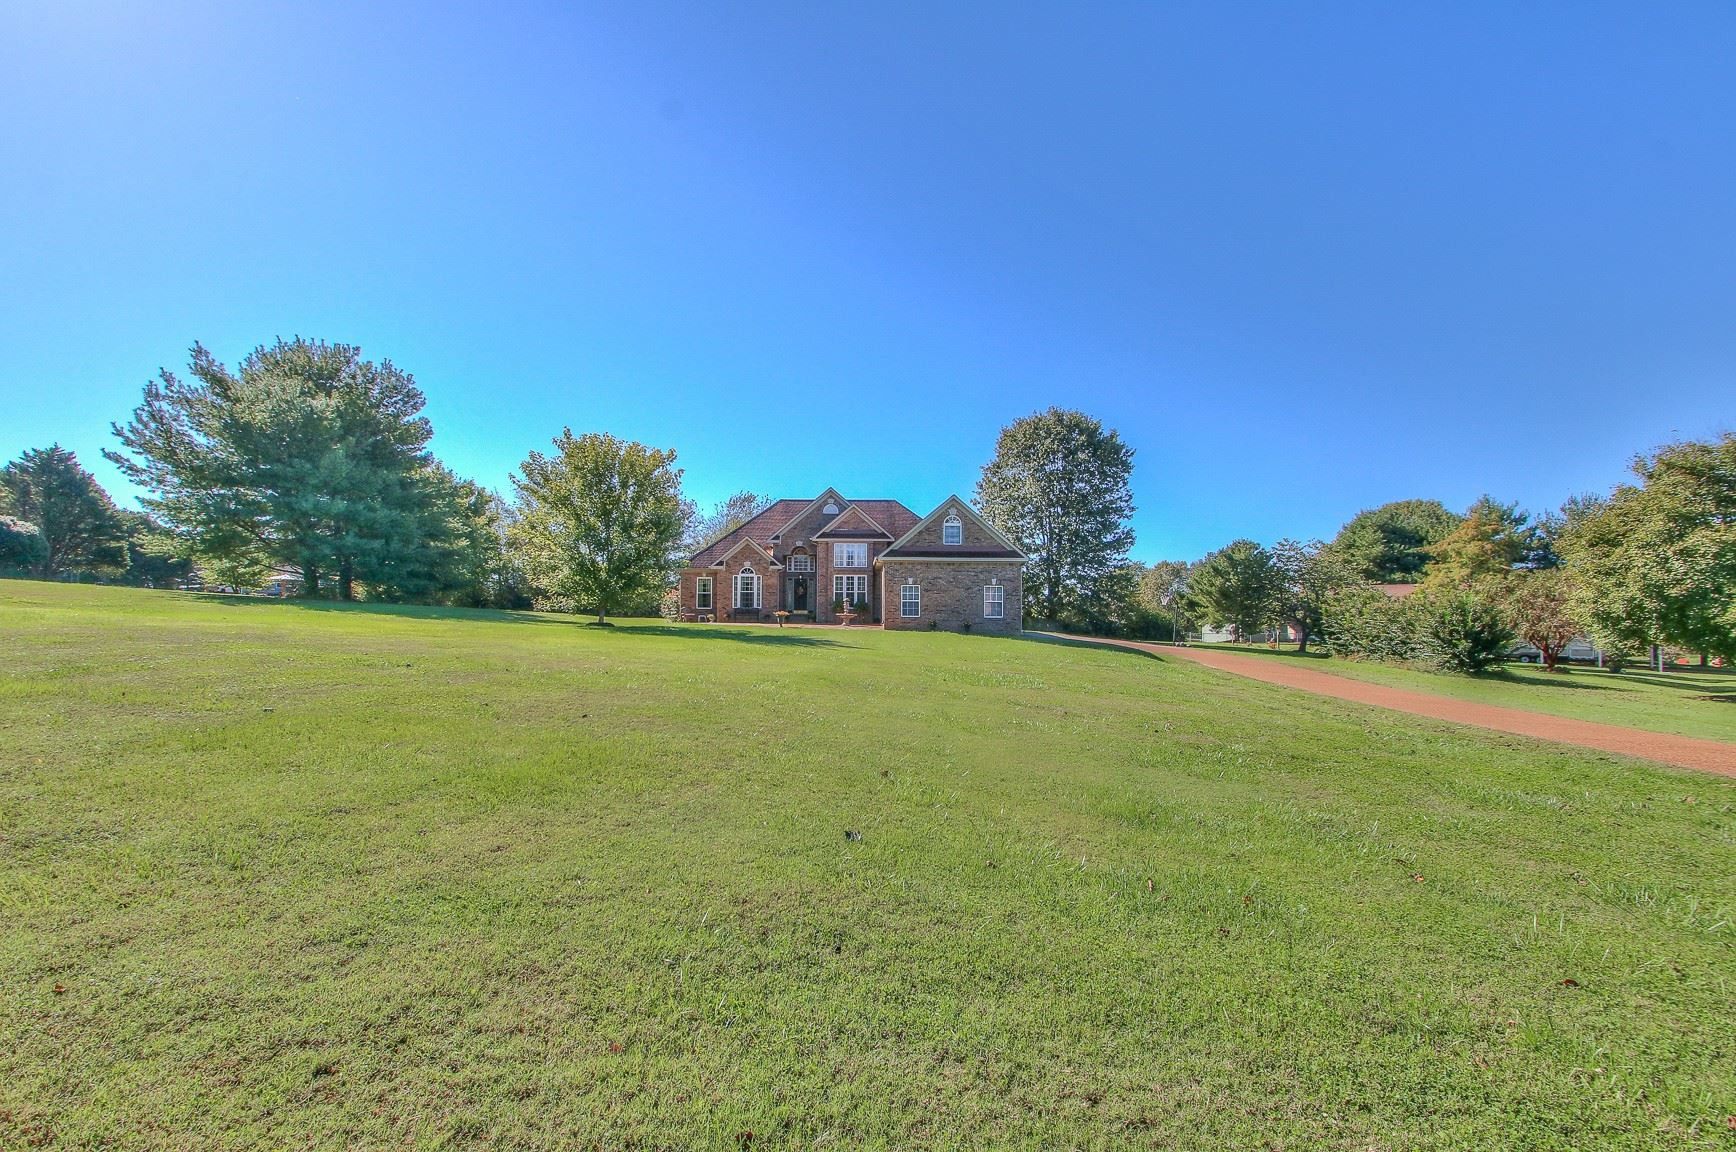 Photo of 3704 Peacock Ct, Spring Hill, TN 37174 (MLS # 2301243)